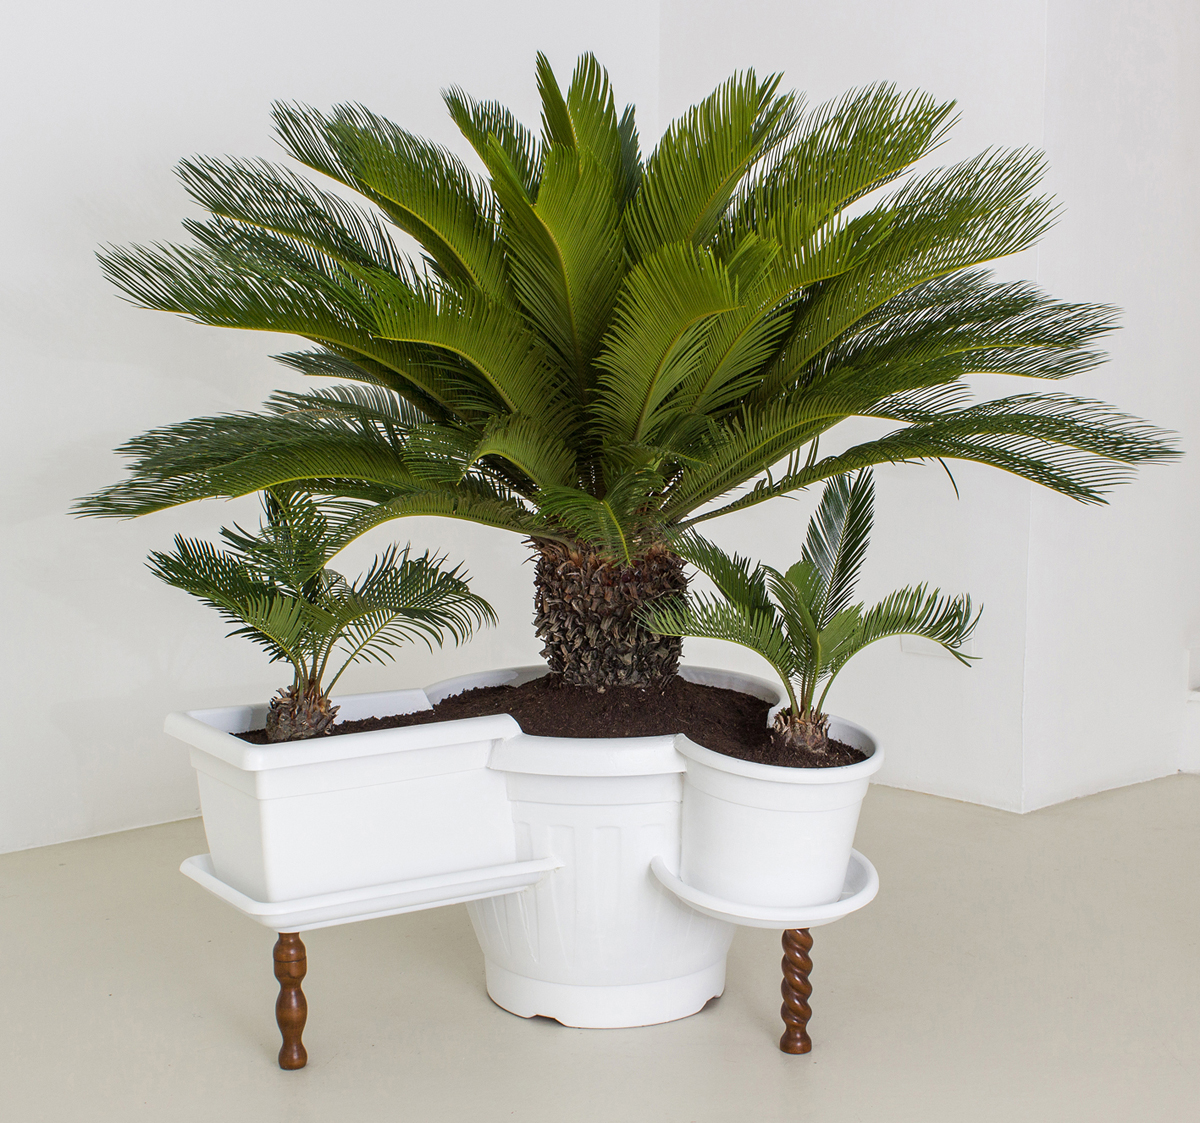 Untitled, 2013, plastic, enamel, ground, wood, Cycas plant , cm 140 x 93 x 76